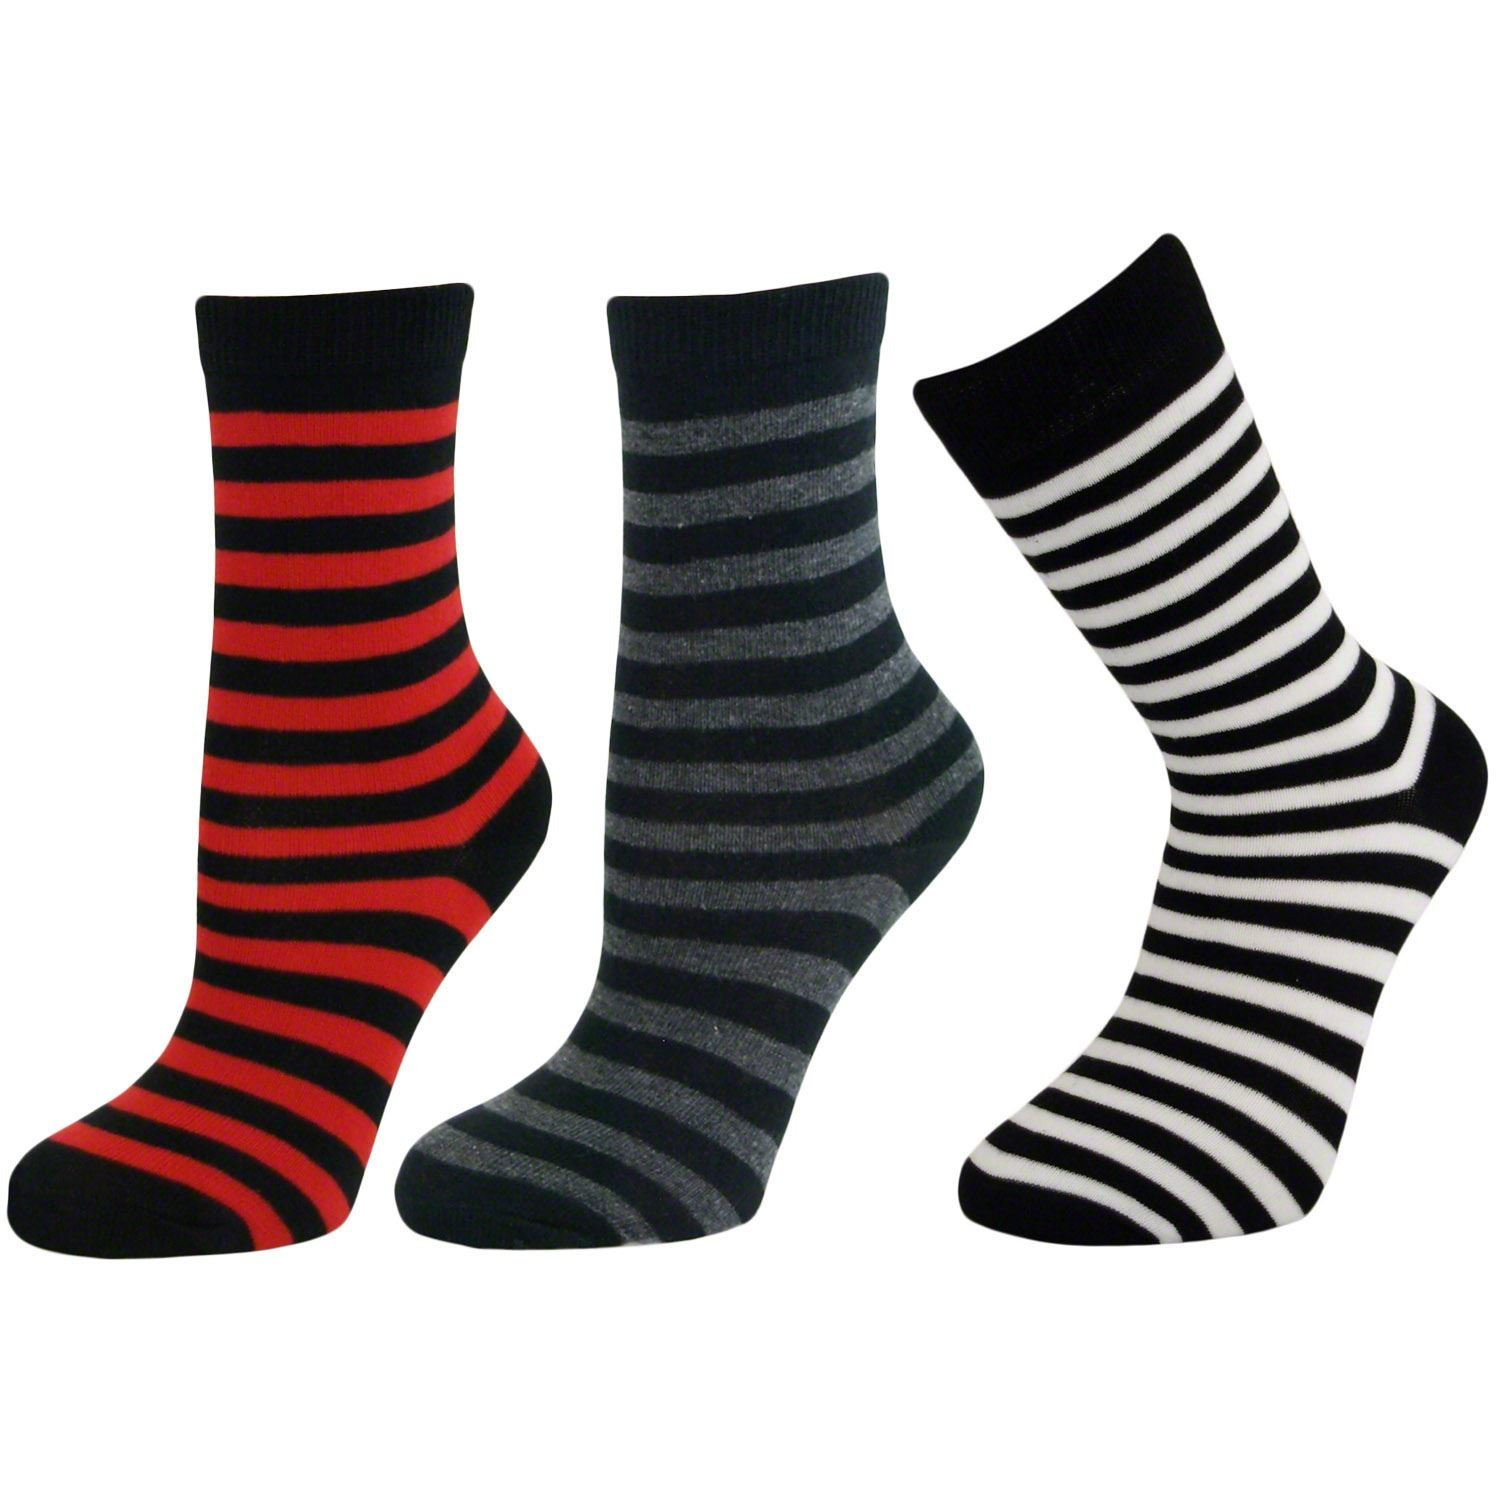 Men Boys Thin Stripes Formal Casual Cotton Short Ankle Socks New d2d Socks 7810-9876-9920